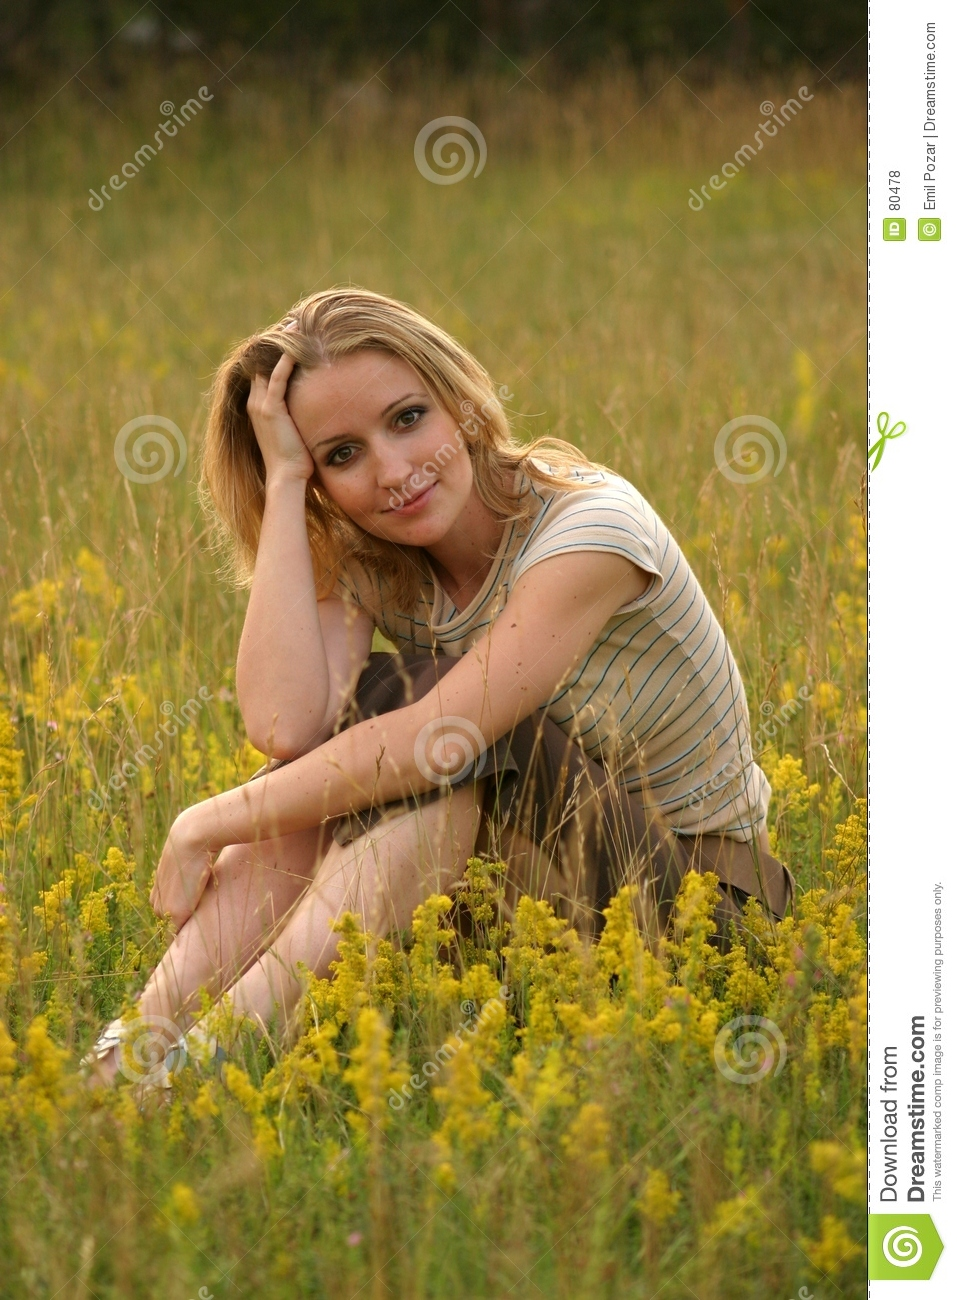 Peterbilt And Girls Wallpaper Country Girl Sitting In The Grass Royalty Free Stock